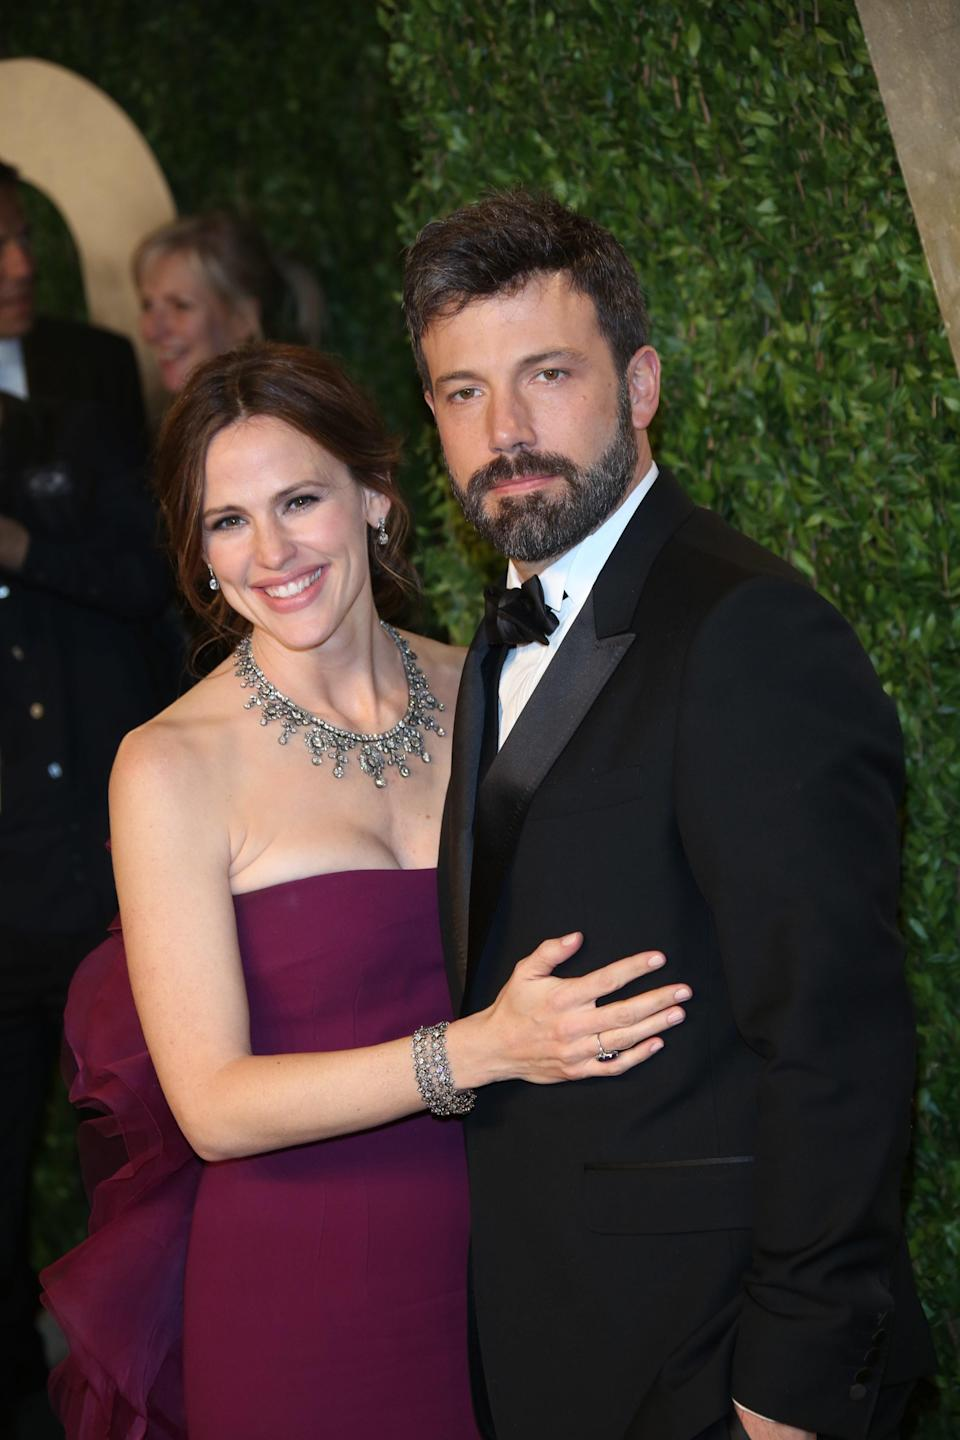 I will never not be rooting for a Jen and Ben reunion. Yes, THIS Jen and Ben. I don't care how many years go by. They belong together and I will tell anyone who will listen.